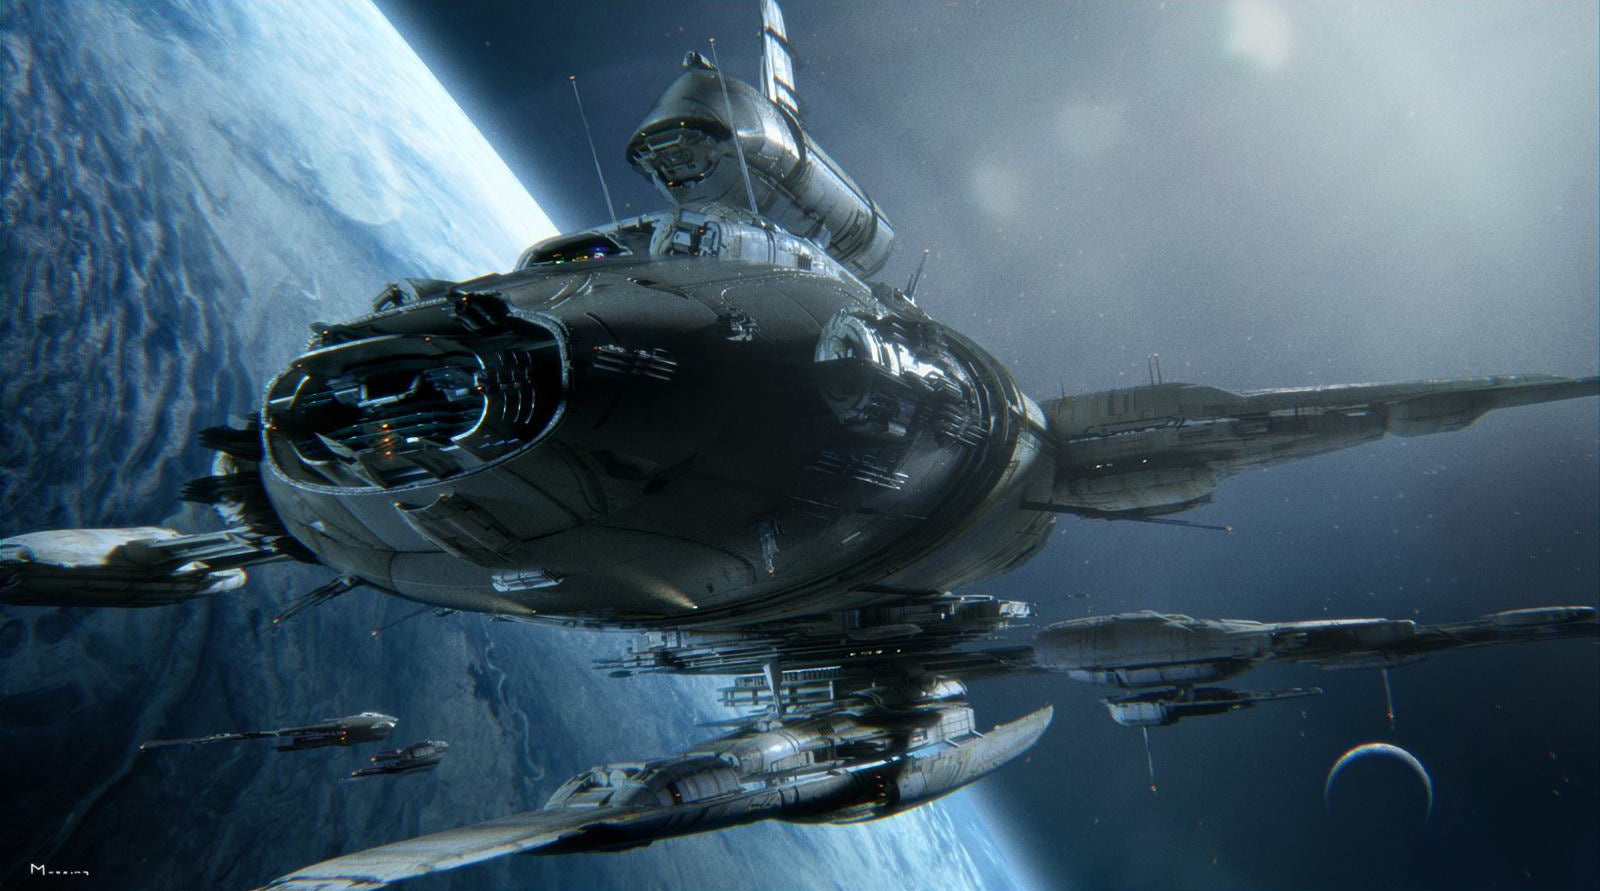 Exceptionnel The Magnificent Science-Fiction Art Of Steven Messing | Gizmodo  PY55